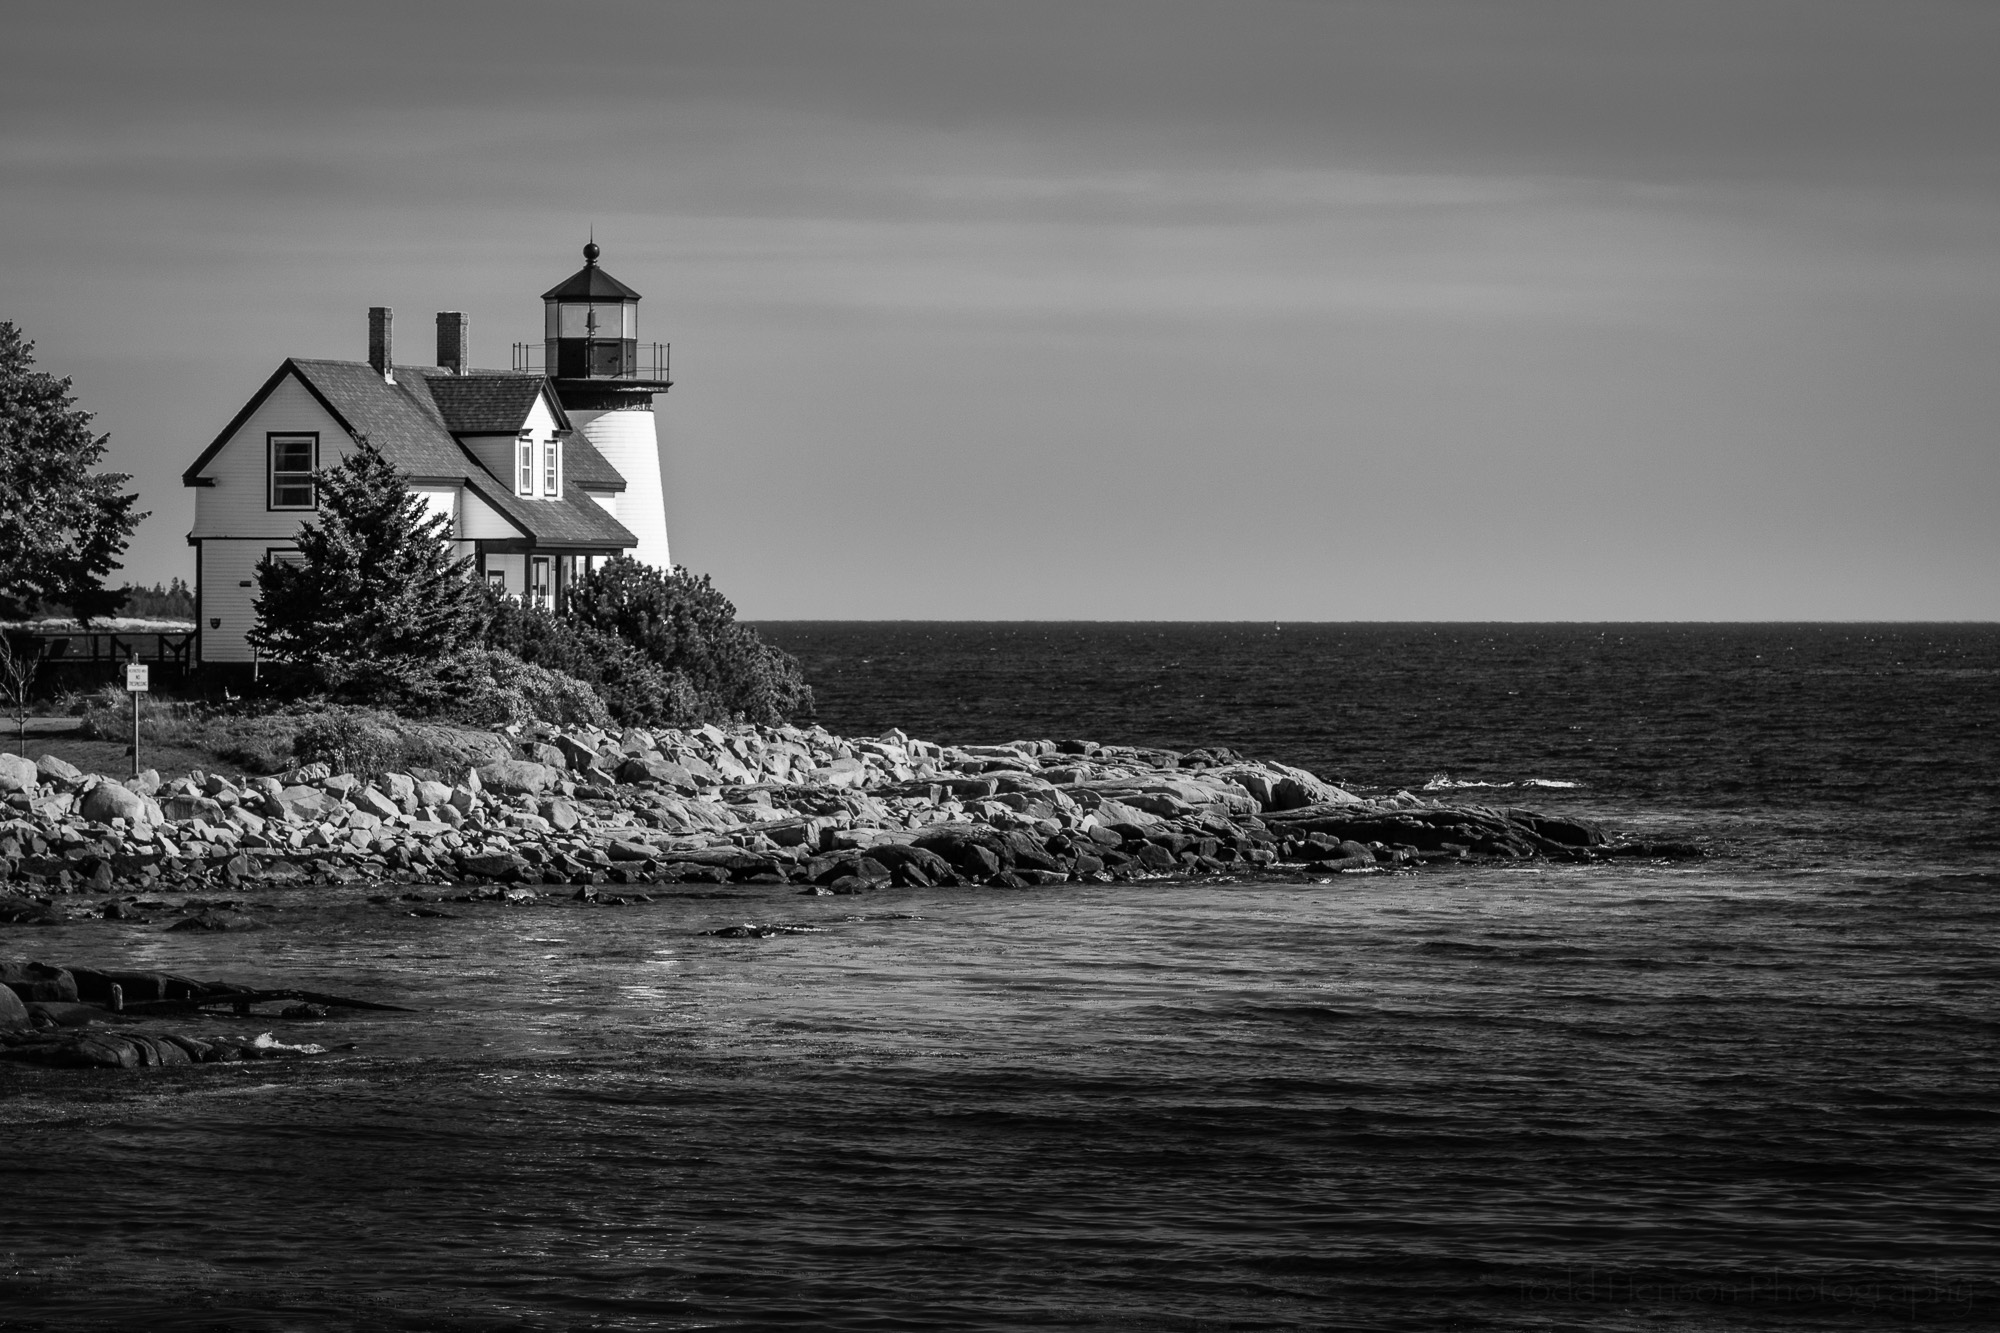 Watching Over Prospect Harbor  (2016) (available for  purchase as a fine art print or on a variety of products )